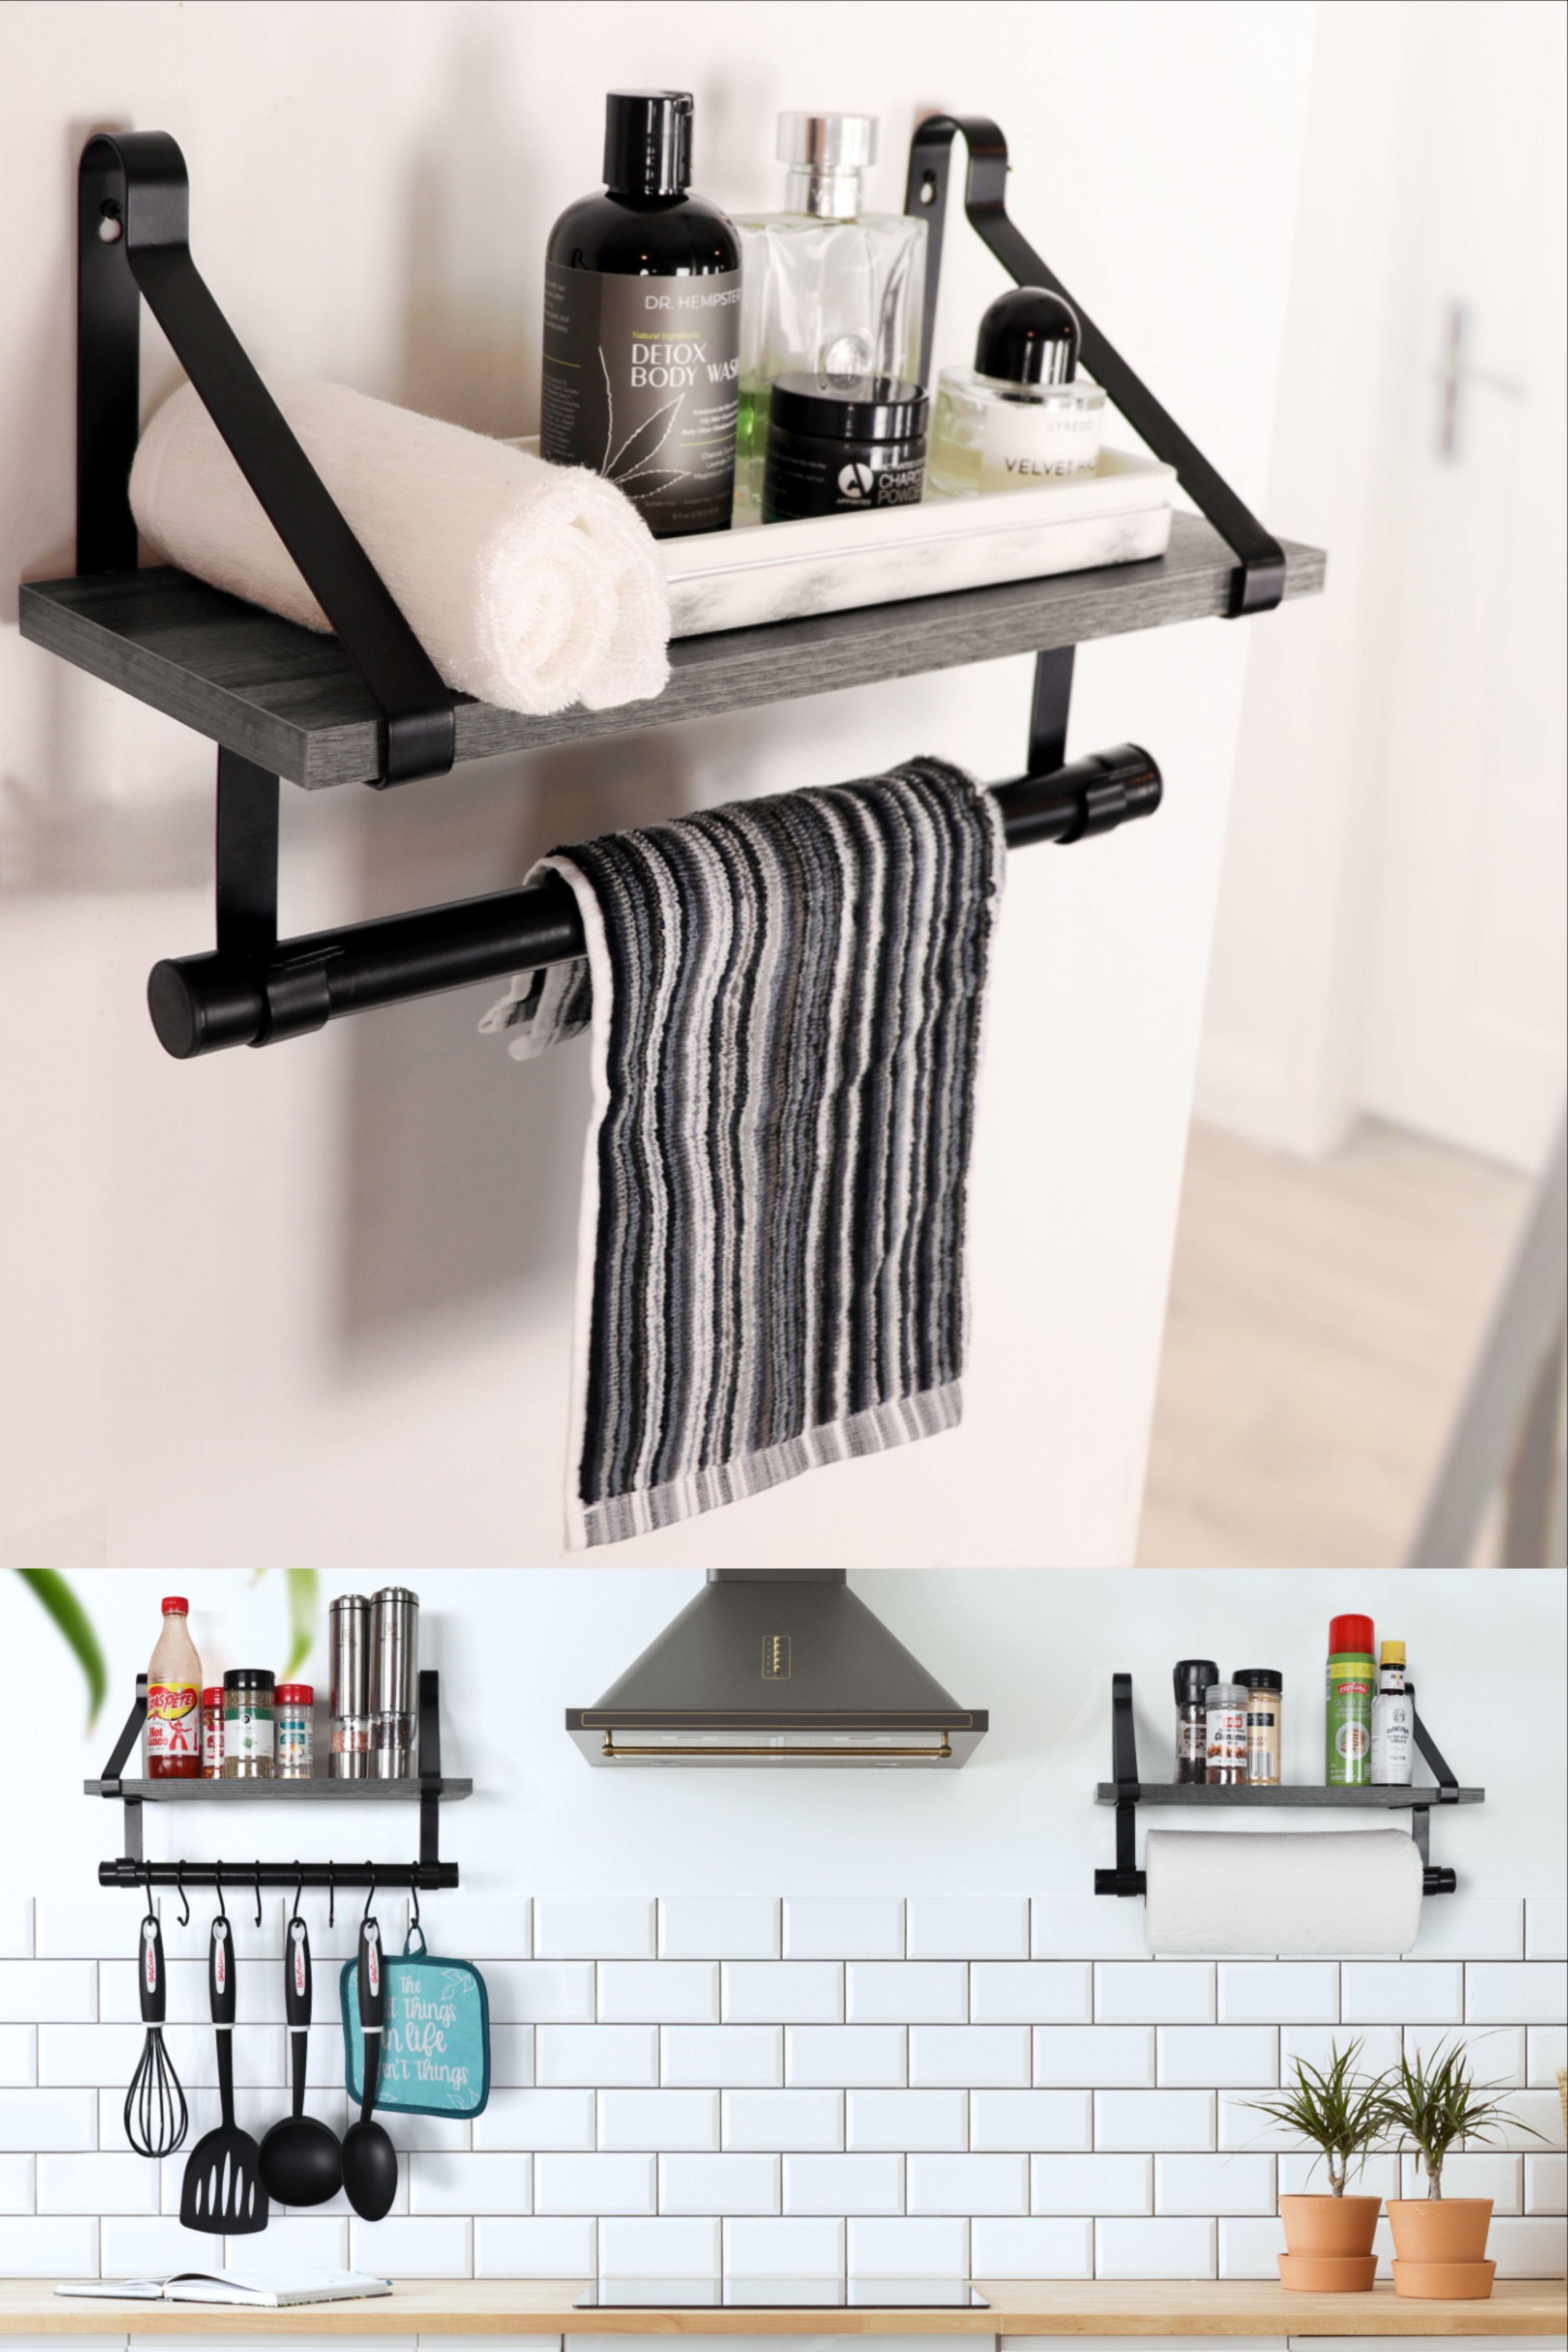 Wall Mounted Floating Shelf With Towel Bar Removable Hooks Grey Wall Storage Shelves Floating Shelves Floating Wall Shelves